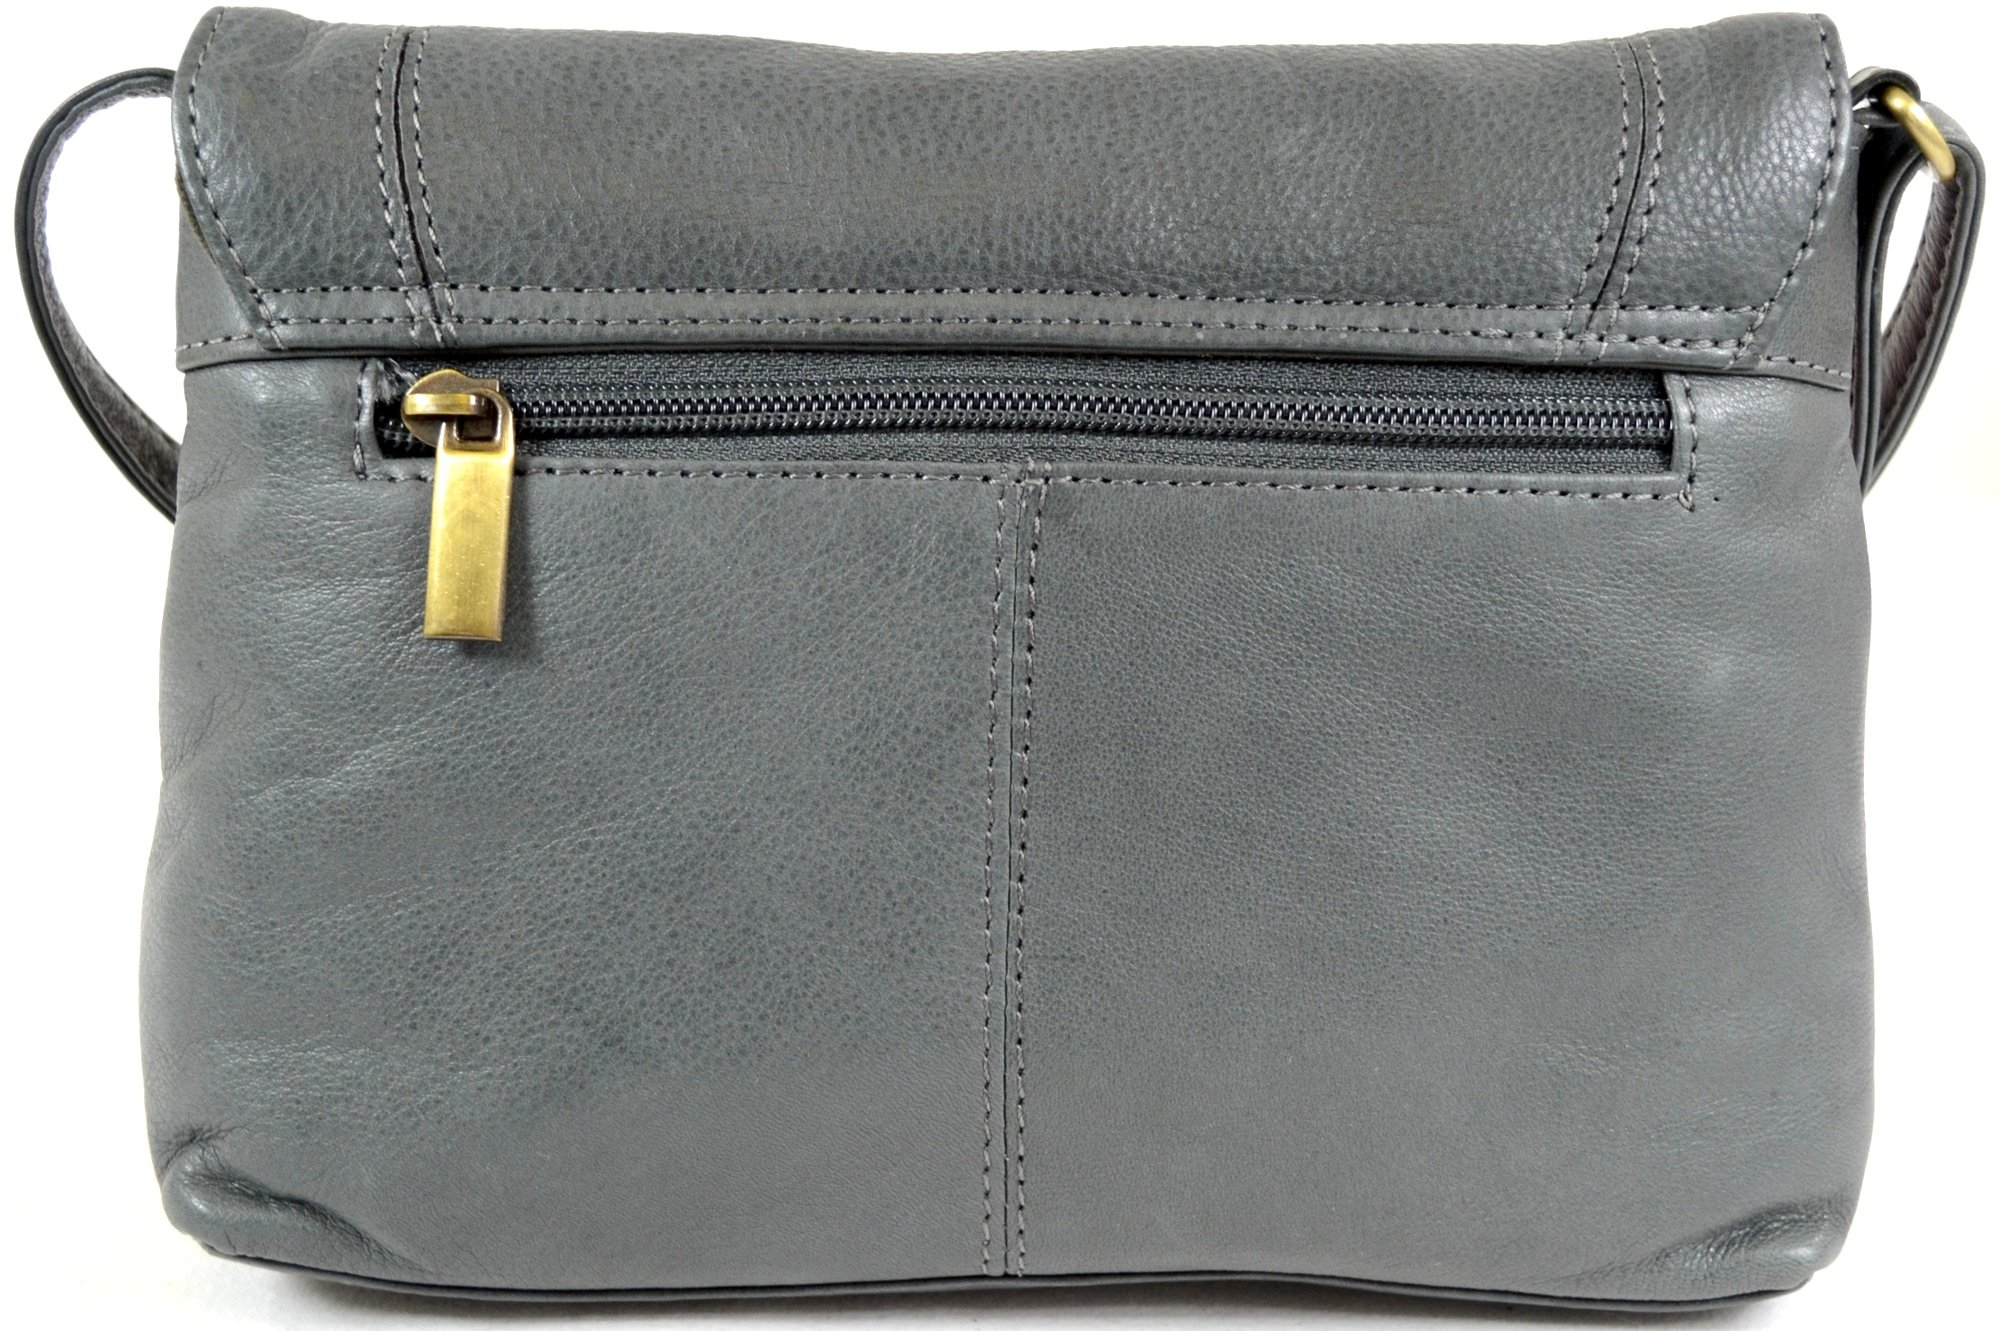 Ladies Soft Premium Leather Shoulder/Cross Body Bag (Charcoal) by SNUGRUGS (Image #2)